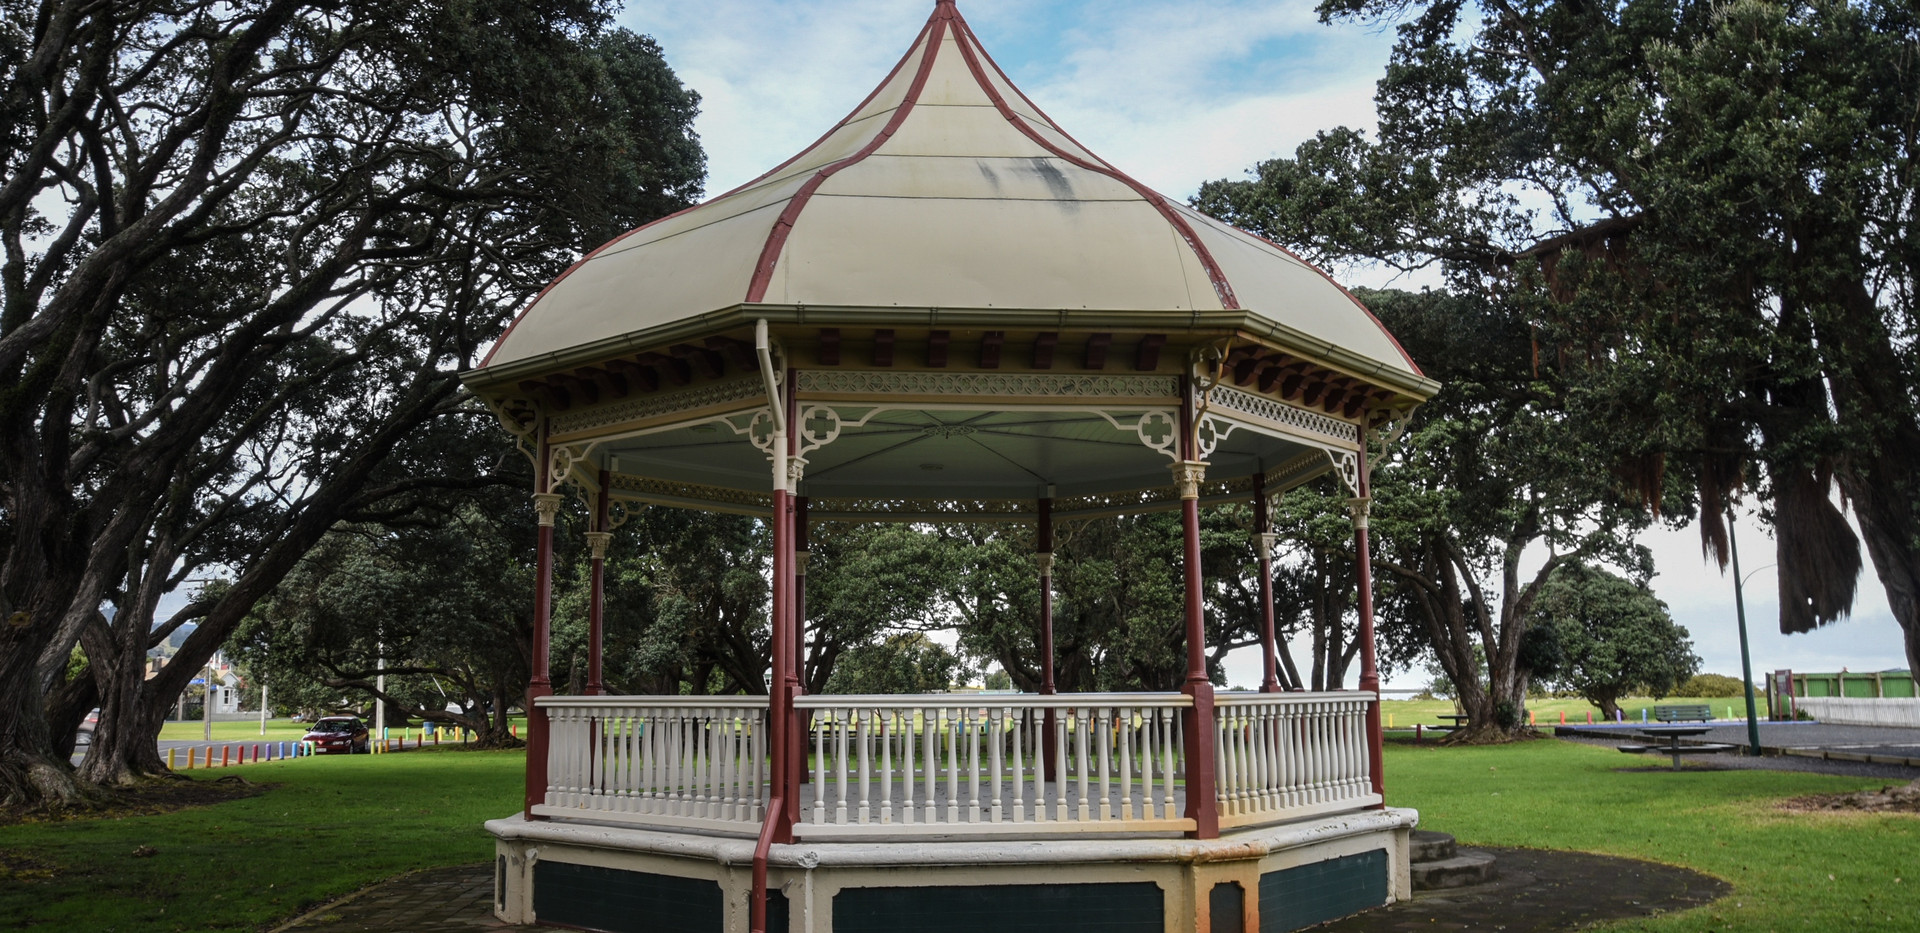 Bandstand in the Park